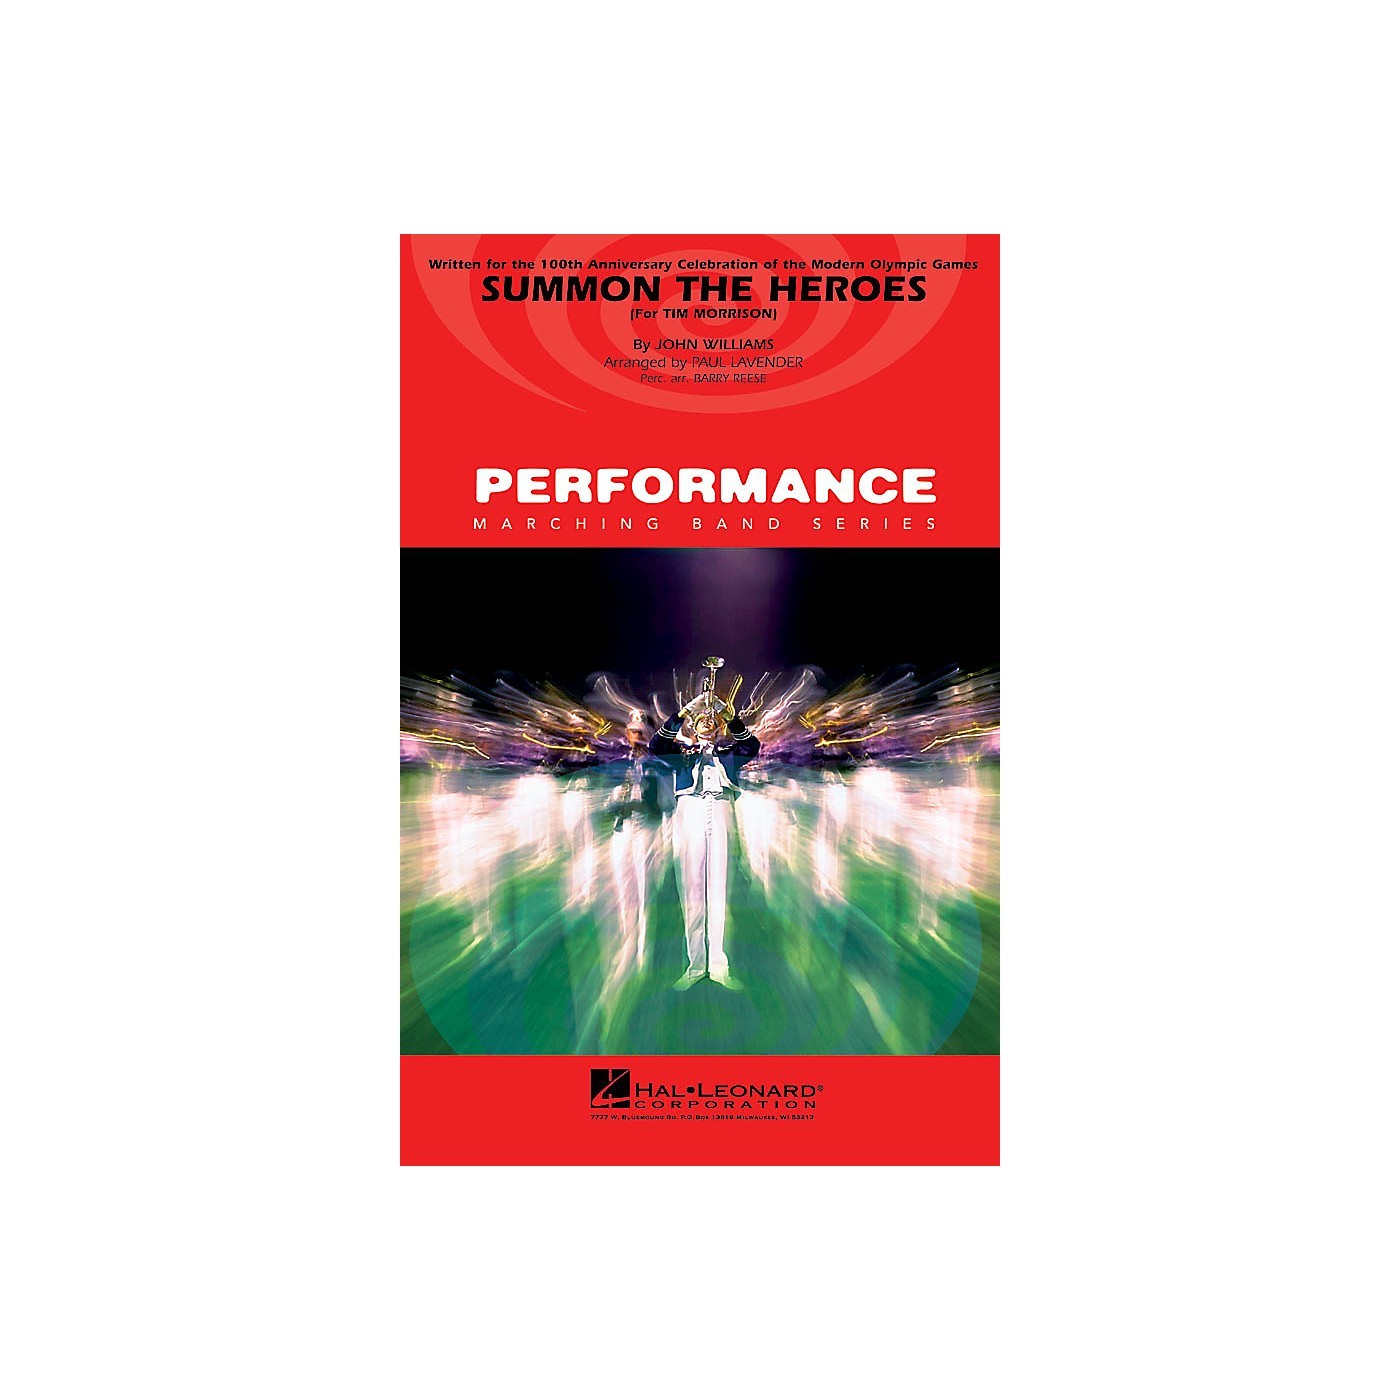 Hal Leonard Summon the Heroes Marching Band Level 3-4 Arranged by Paul Lavender thumbnail